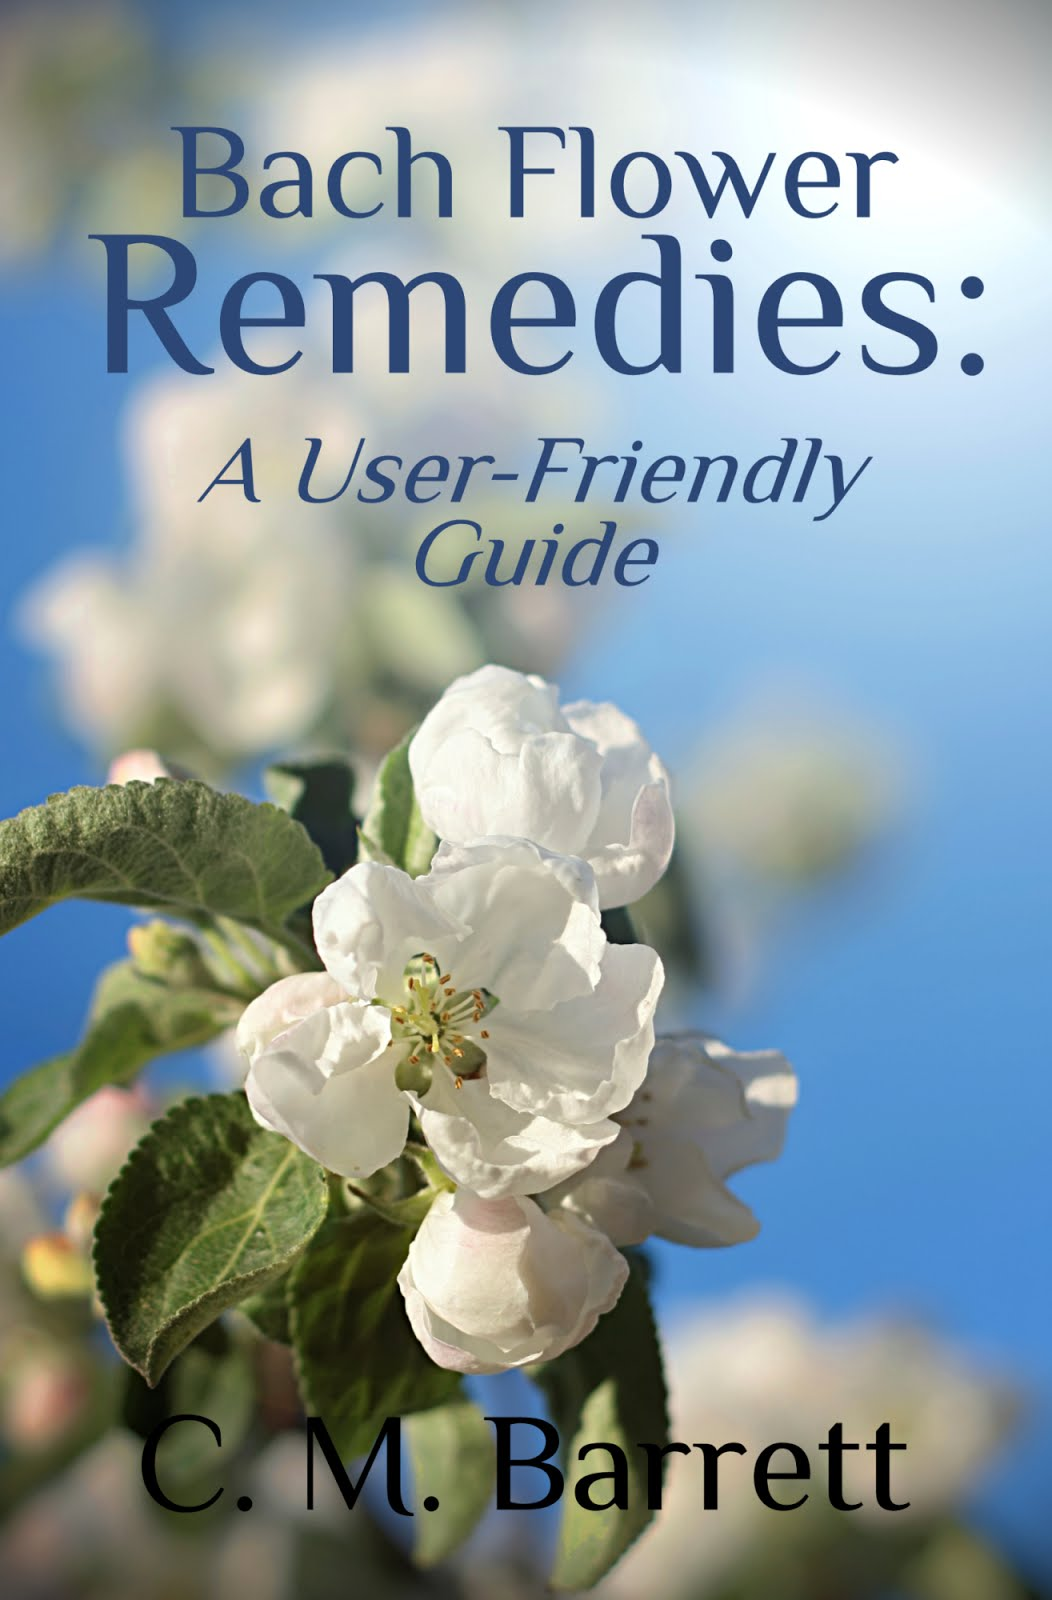 Bach Flower Remedies: A User-friendly Guide